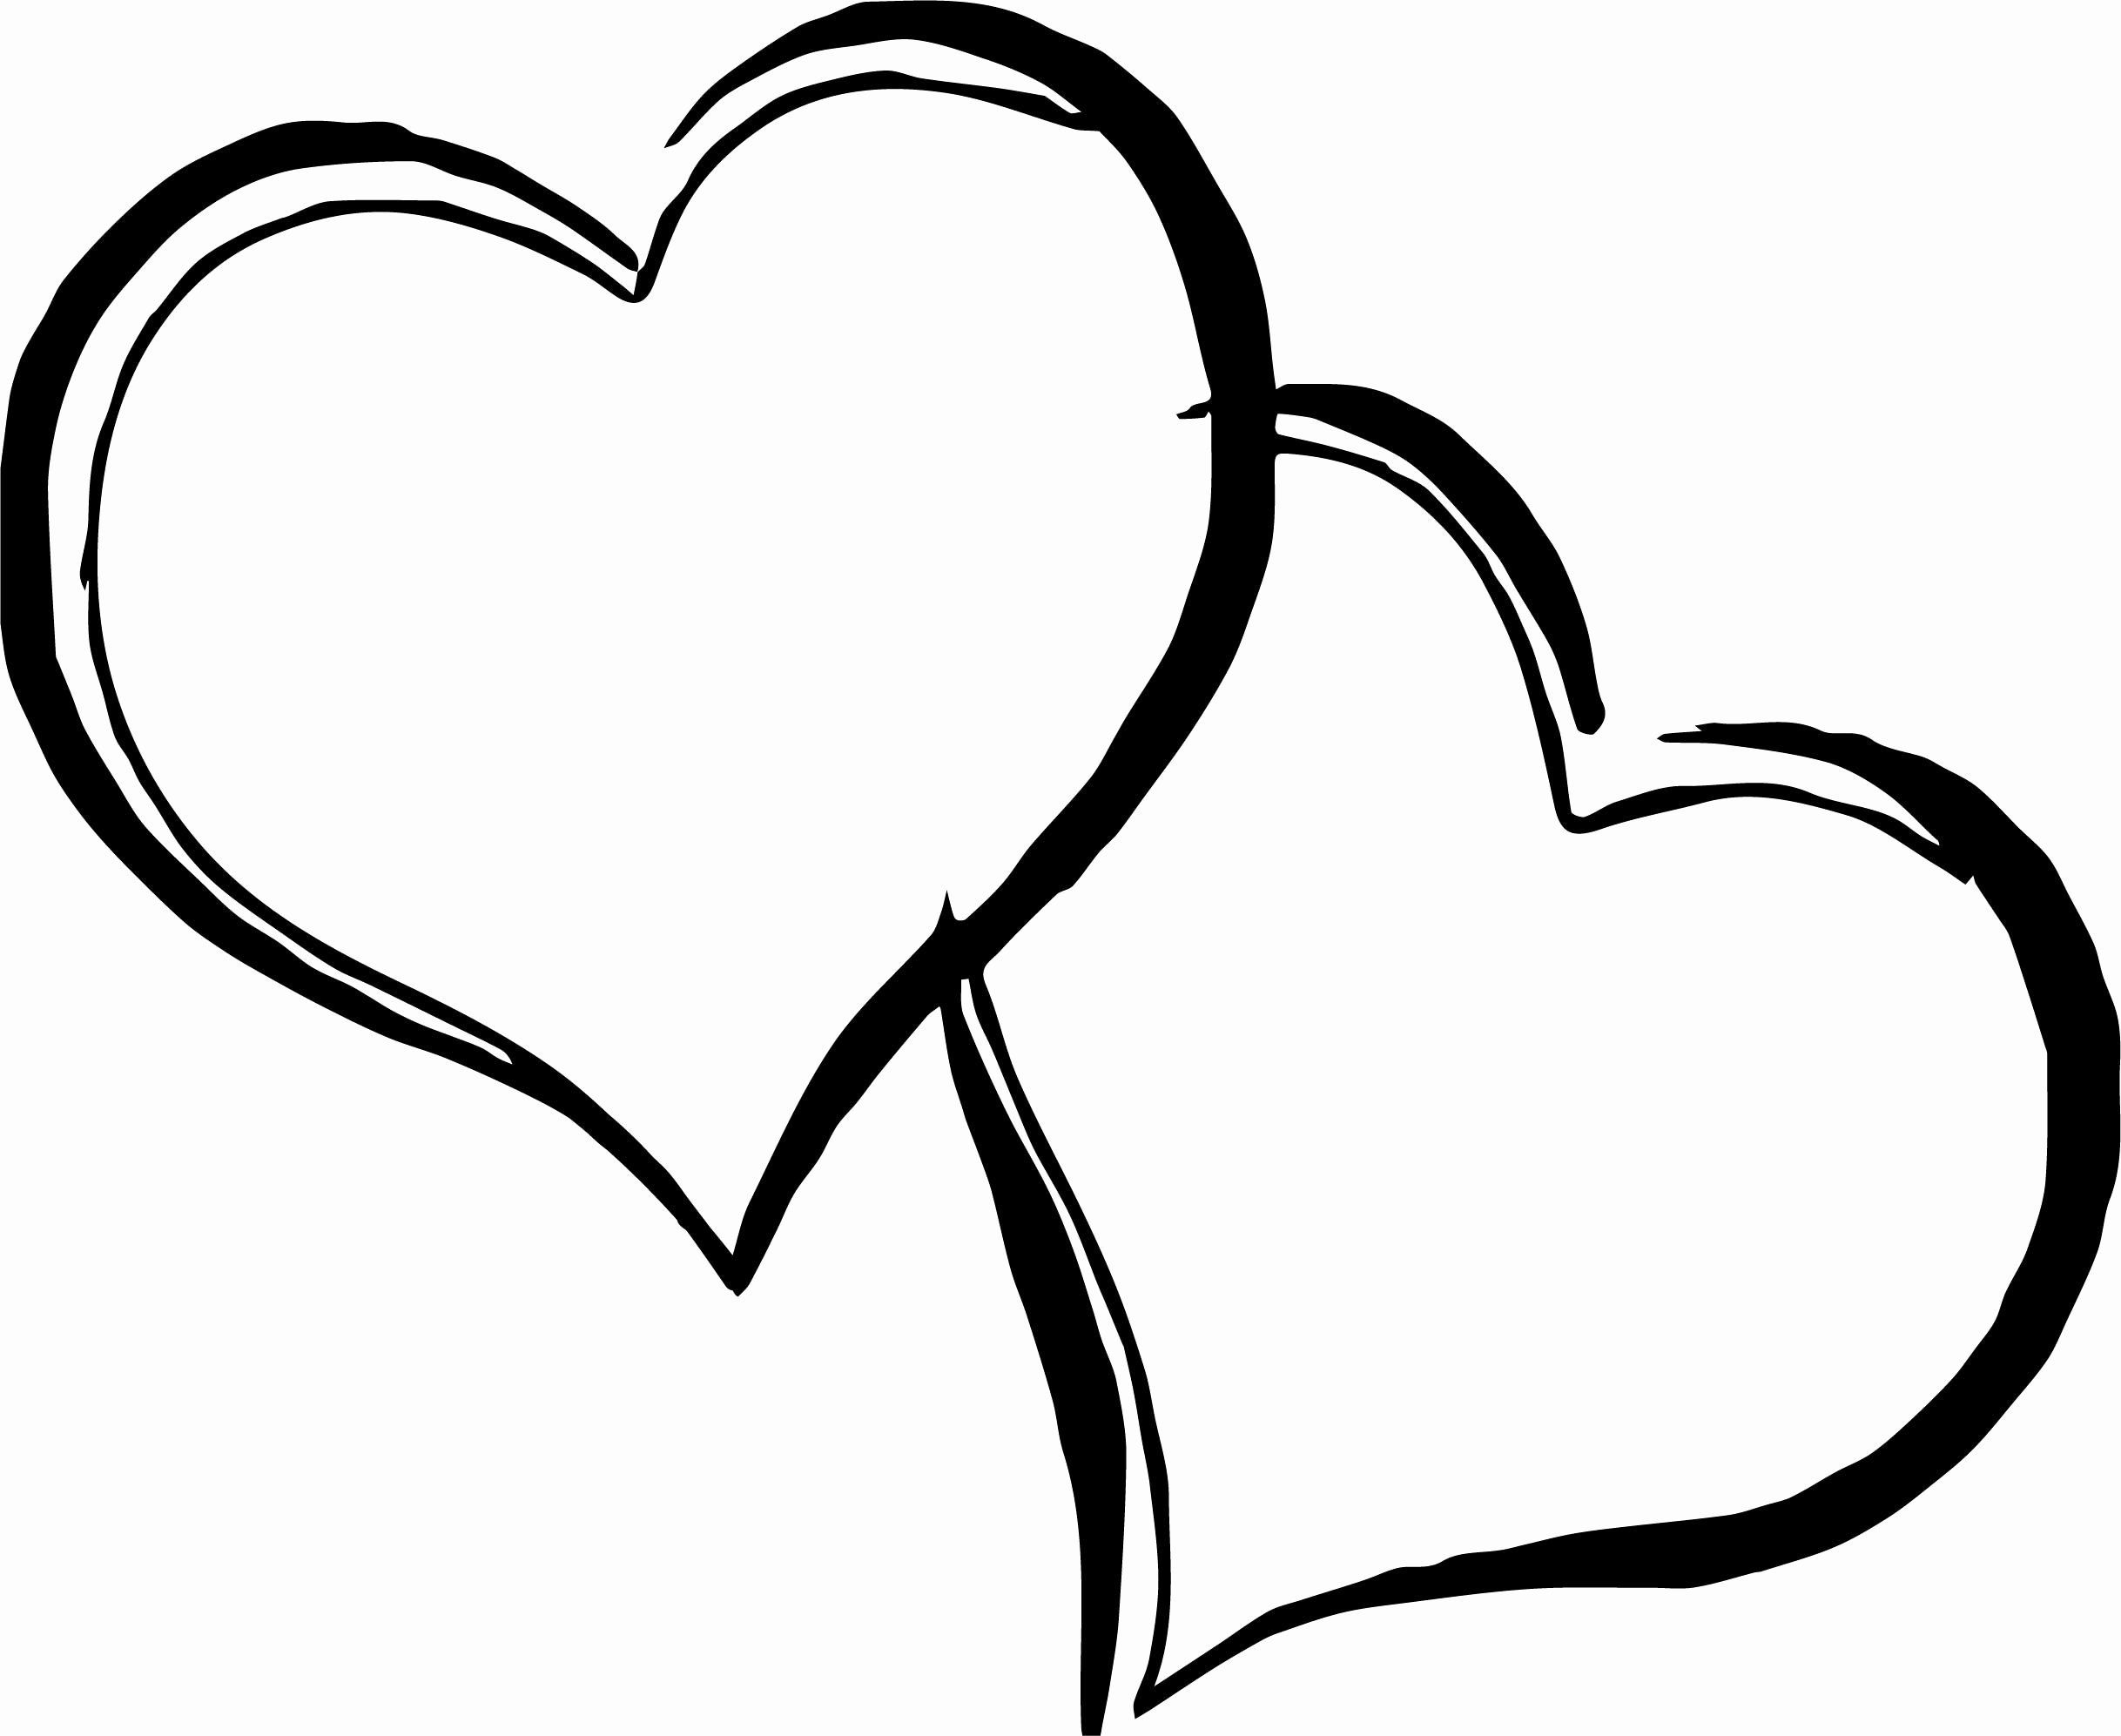 Coloring Cartoon Hearts New Two Beautiful Hearts Coloring Pages Heart Coloring Pages Cartoon Heart Coloring Pages